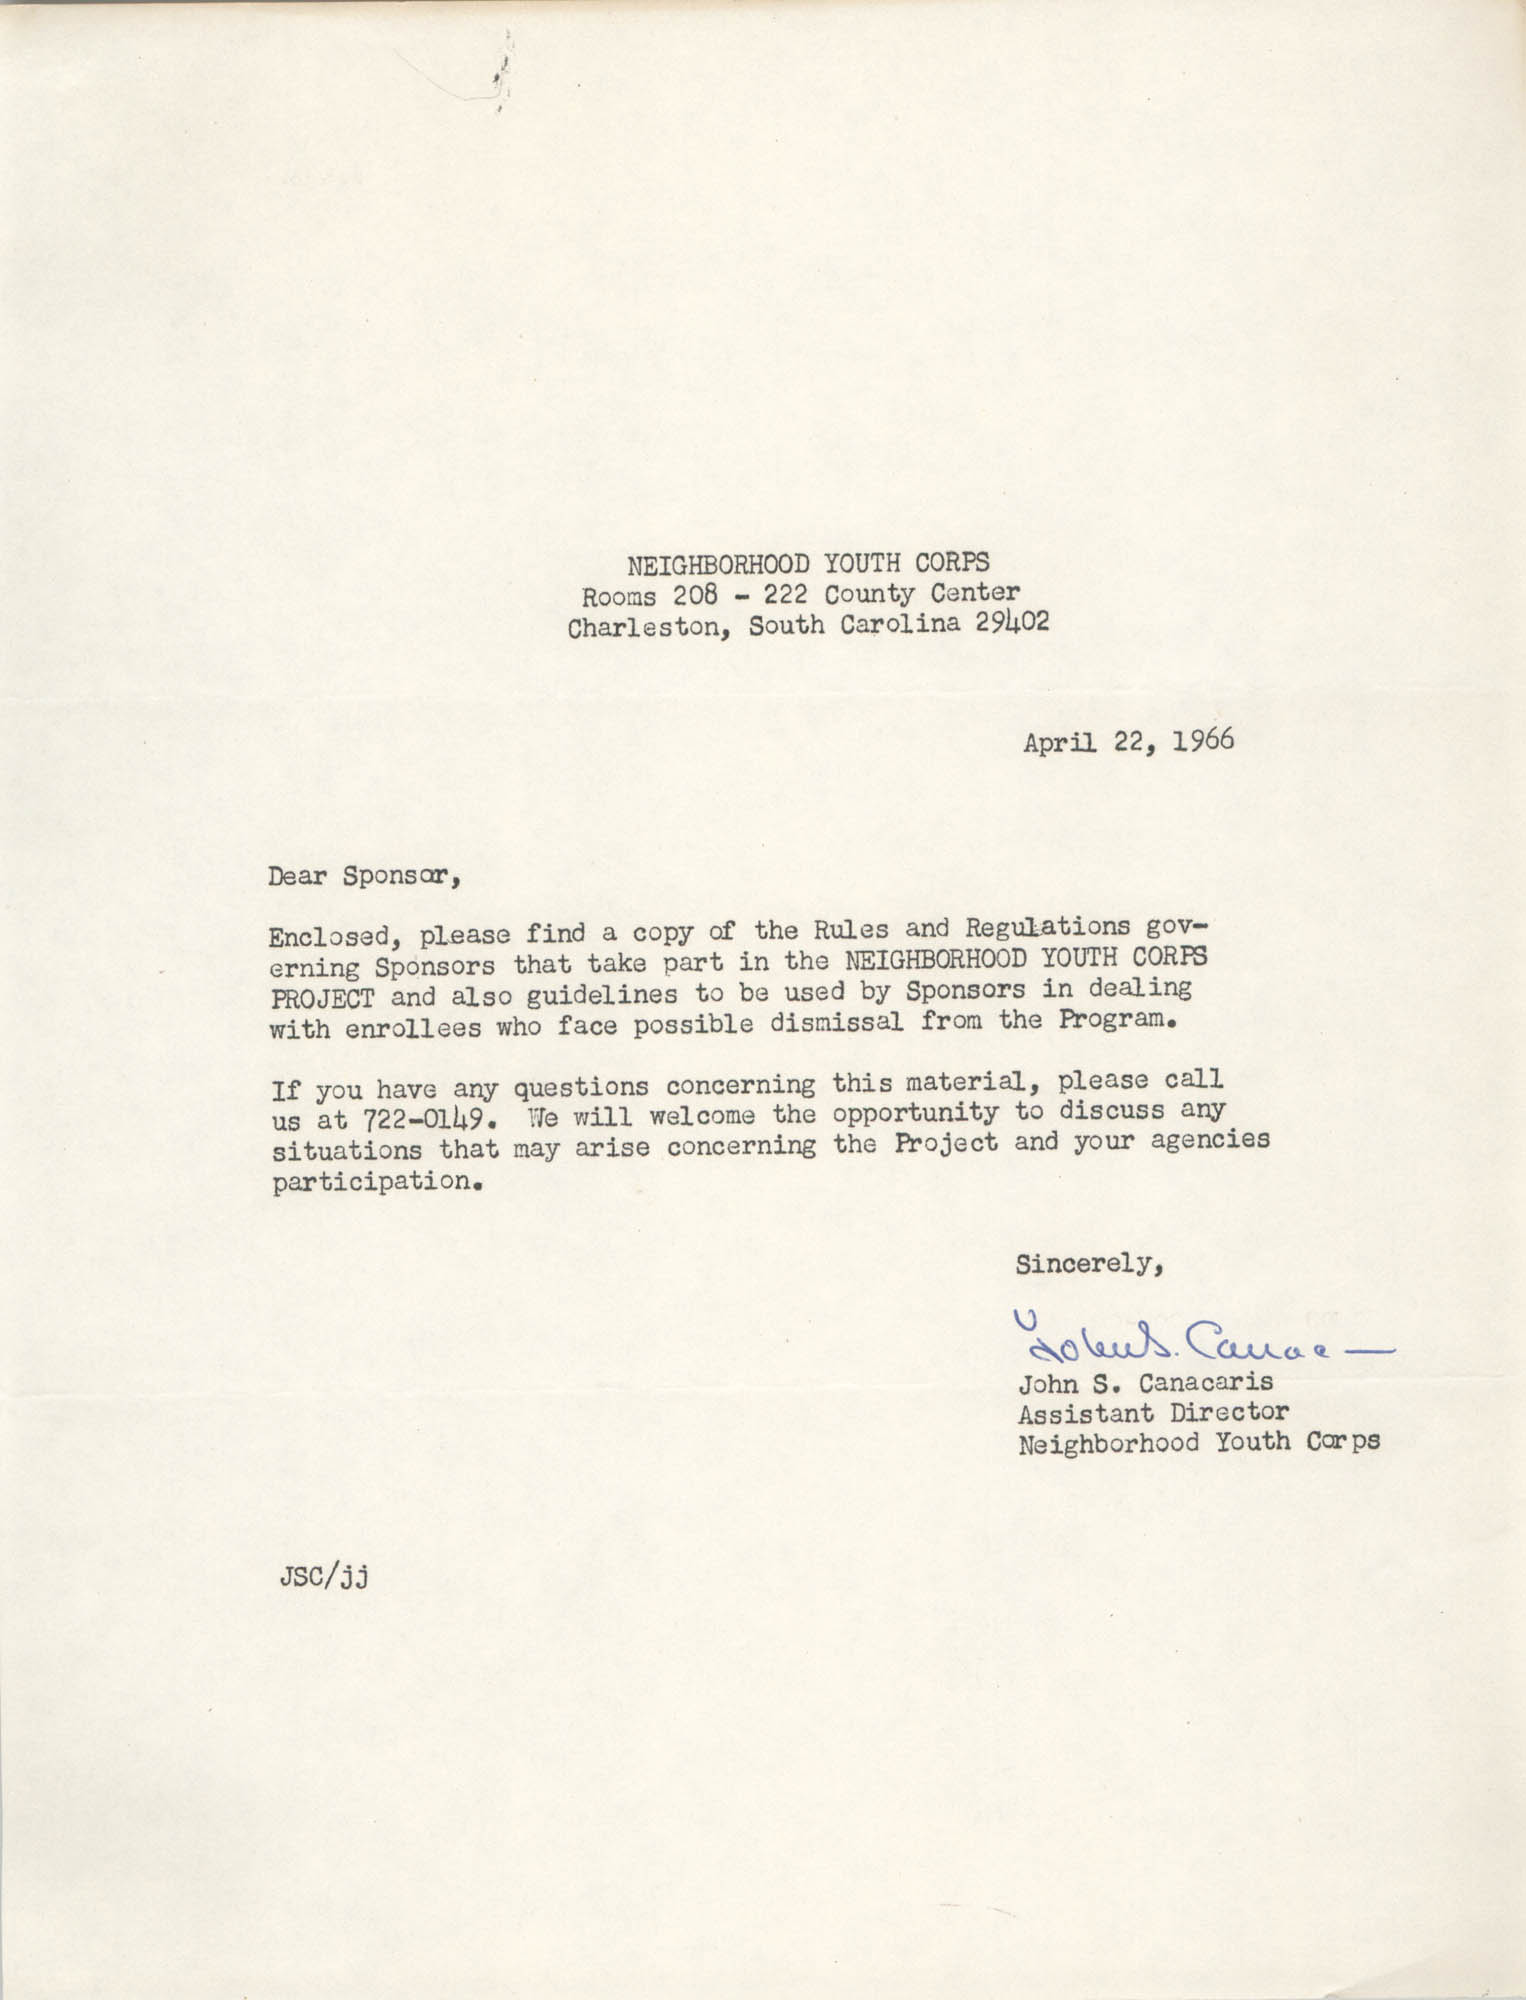 Letter from John S. Canacaris, April 22, 1966